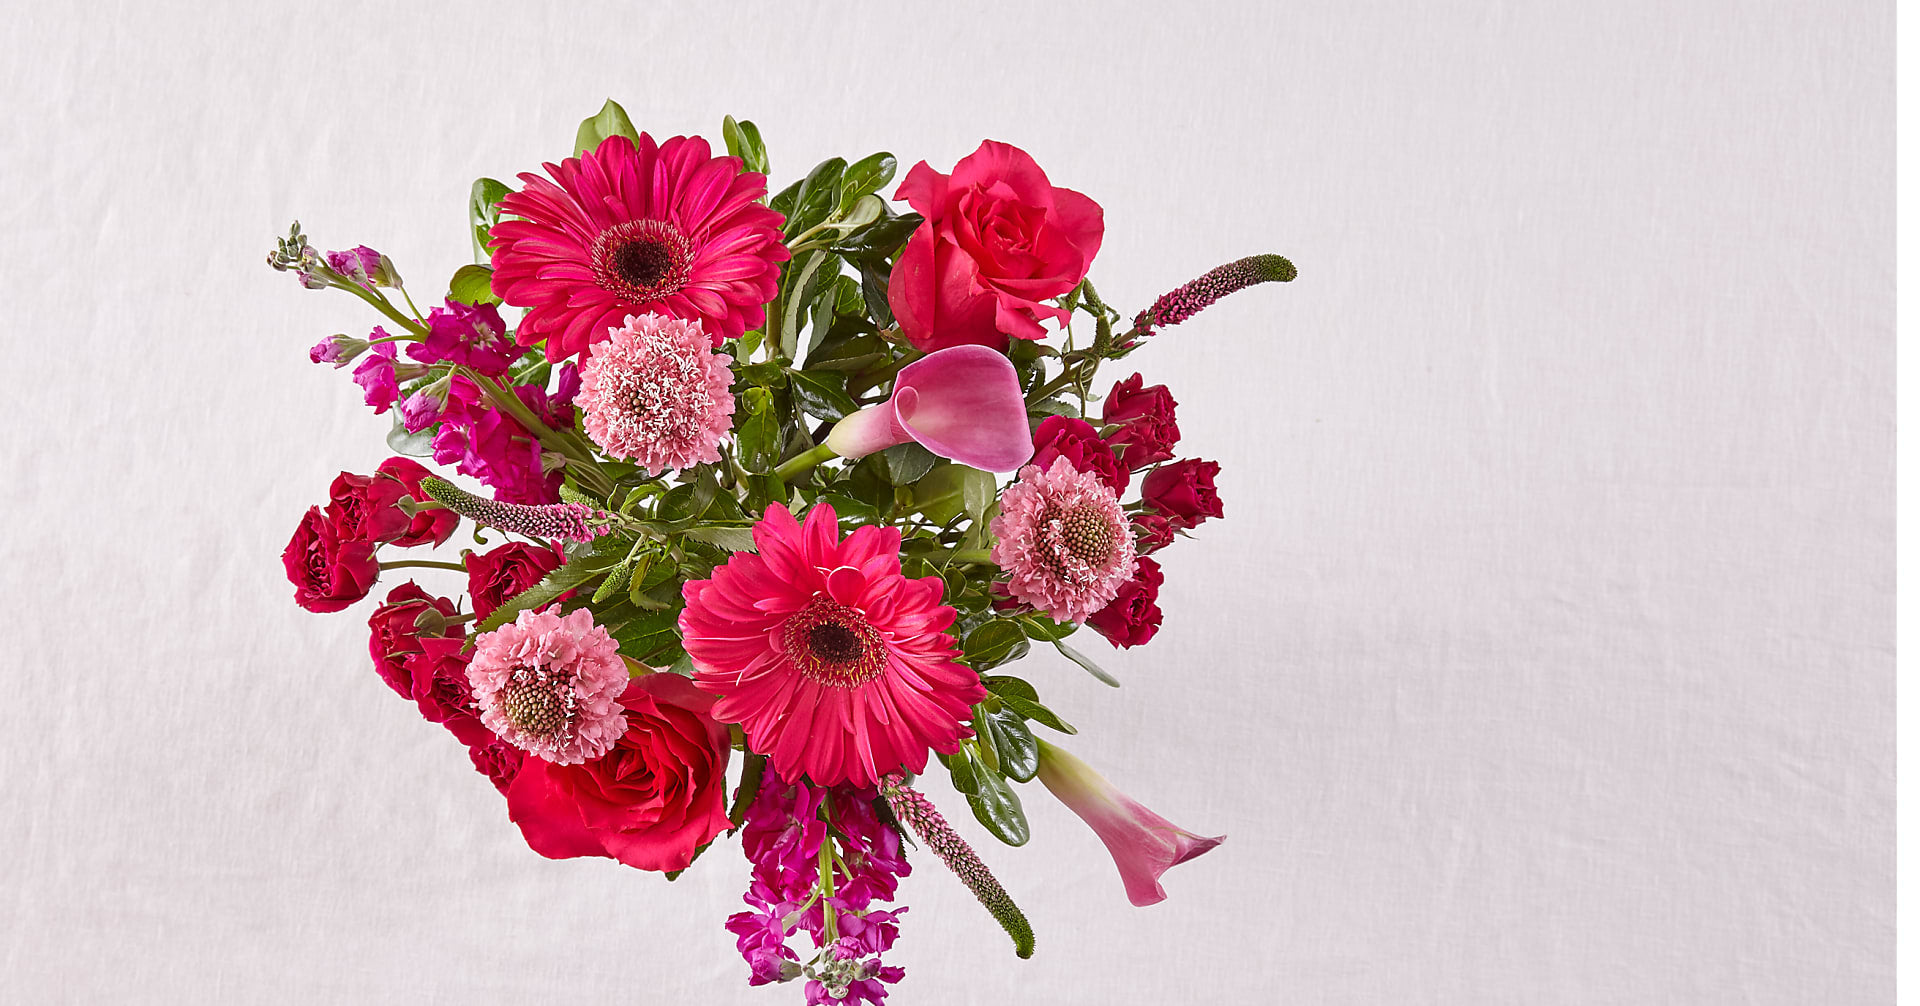 Ruby Rose & Calla Lily Mixed Bouquet - Image 2 Of 2